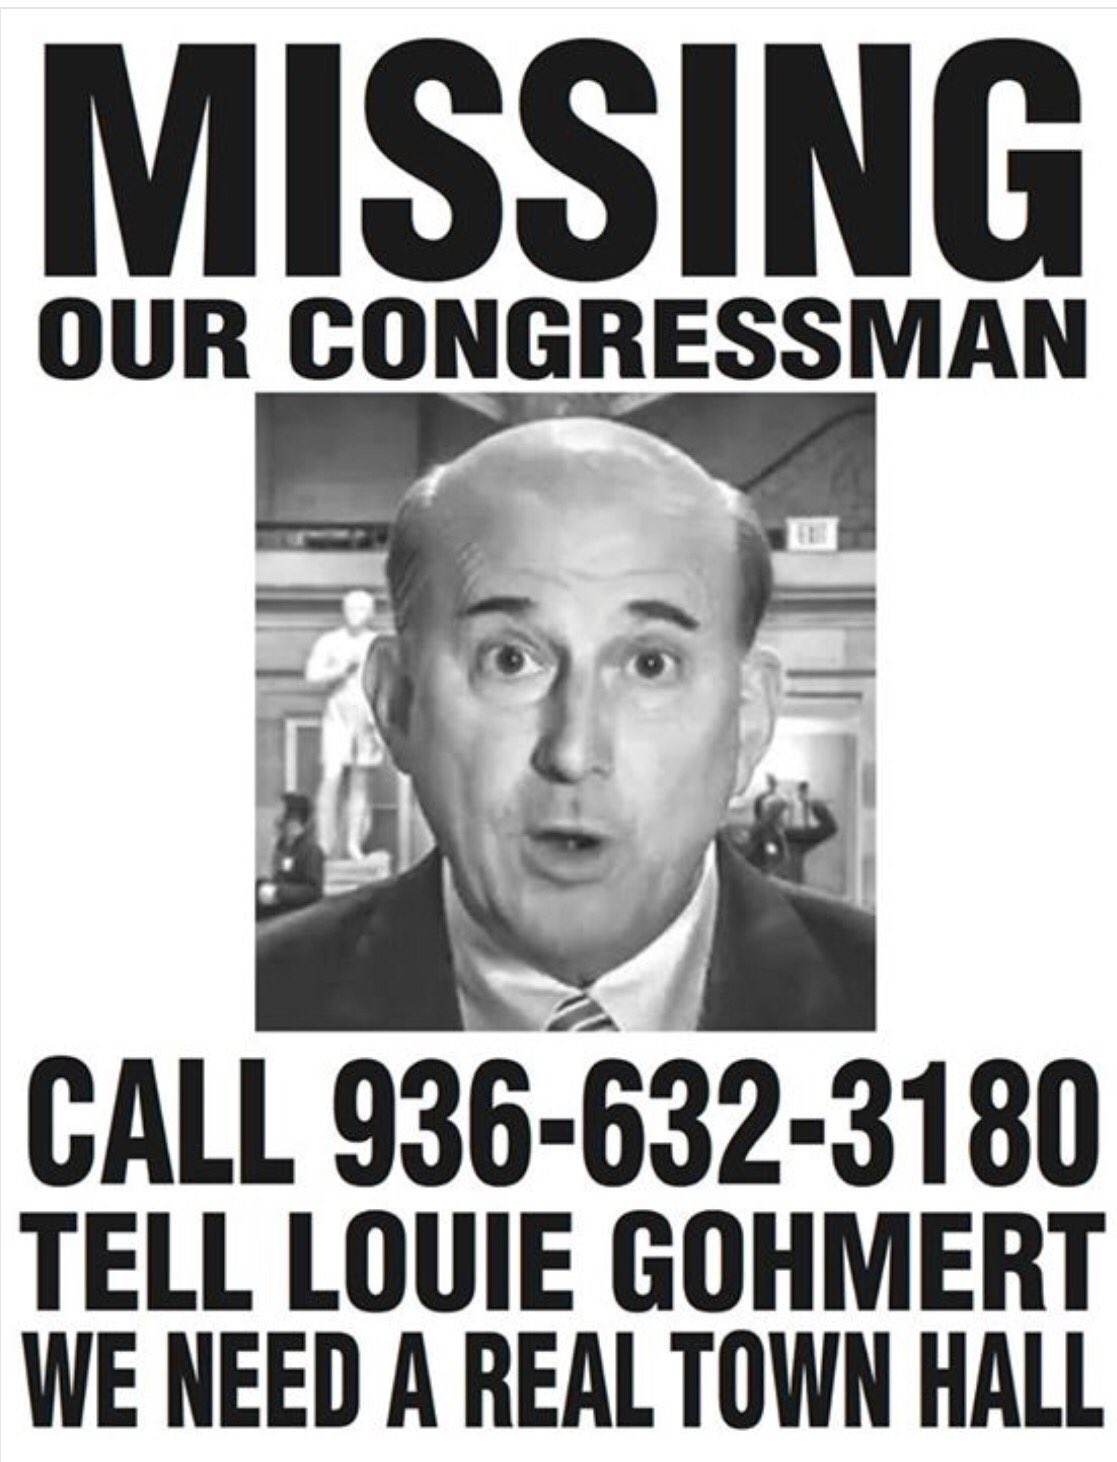 Has anyone seen our rep Louie Gohmert? We've been searching for him! HELP us locate our Rep!? Please RT this!! https://t.co/wujkYWs27J